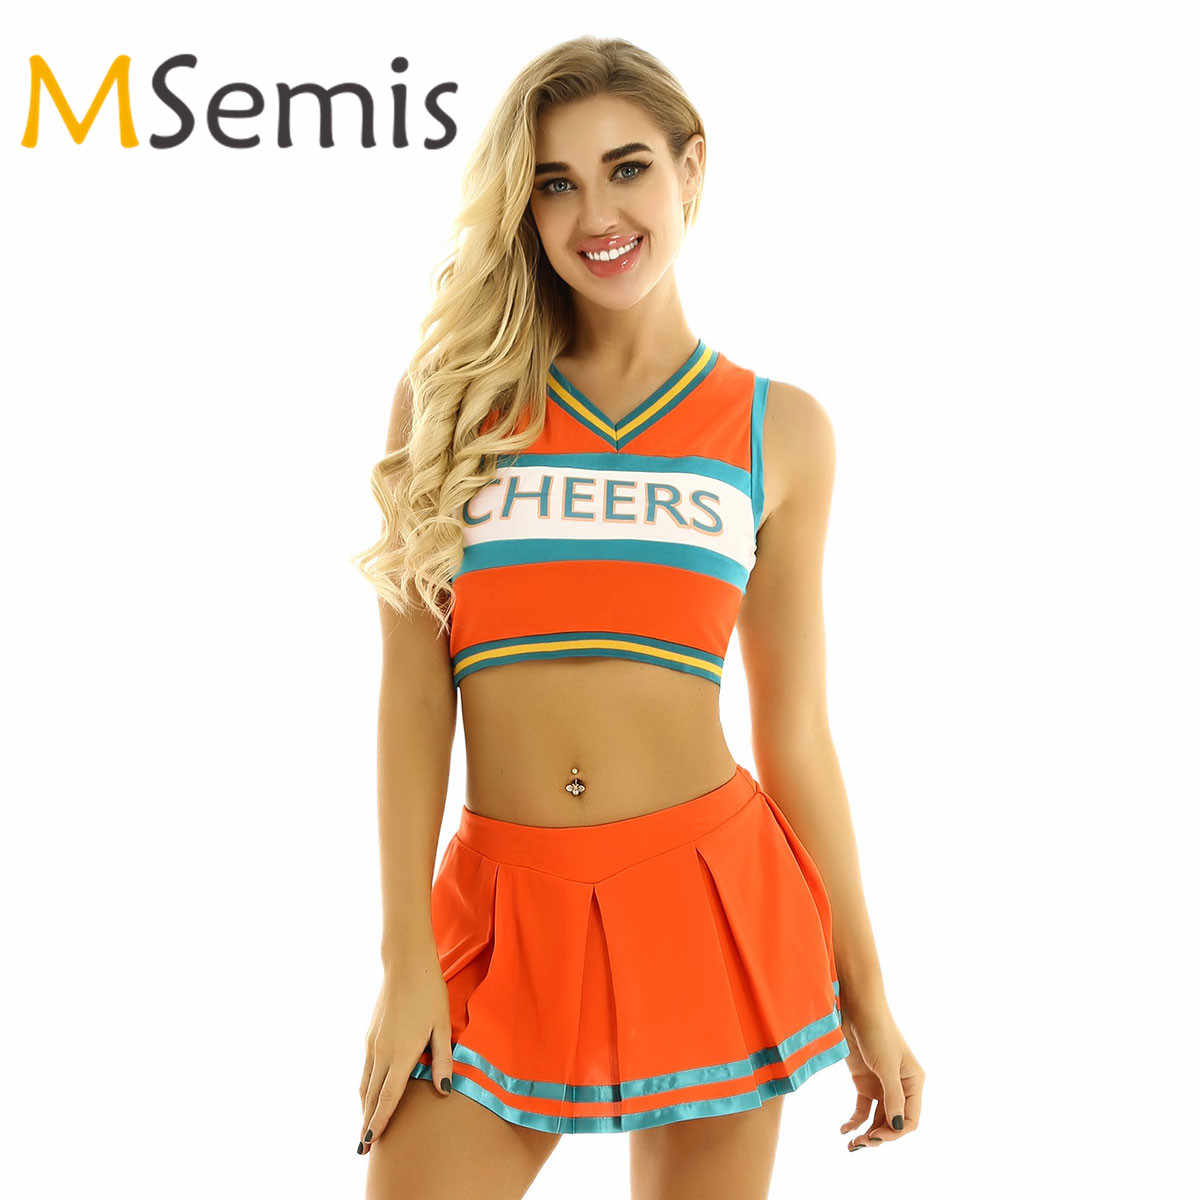 Frauen Cheerleading Sport Uniform Cheerleader Kostüm Cosplay Outfit Ärmel Crop Top mit Mini Plissee Rock für Tanzen